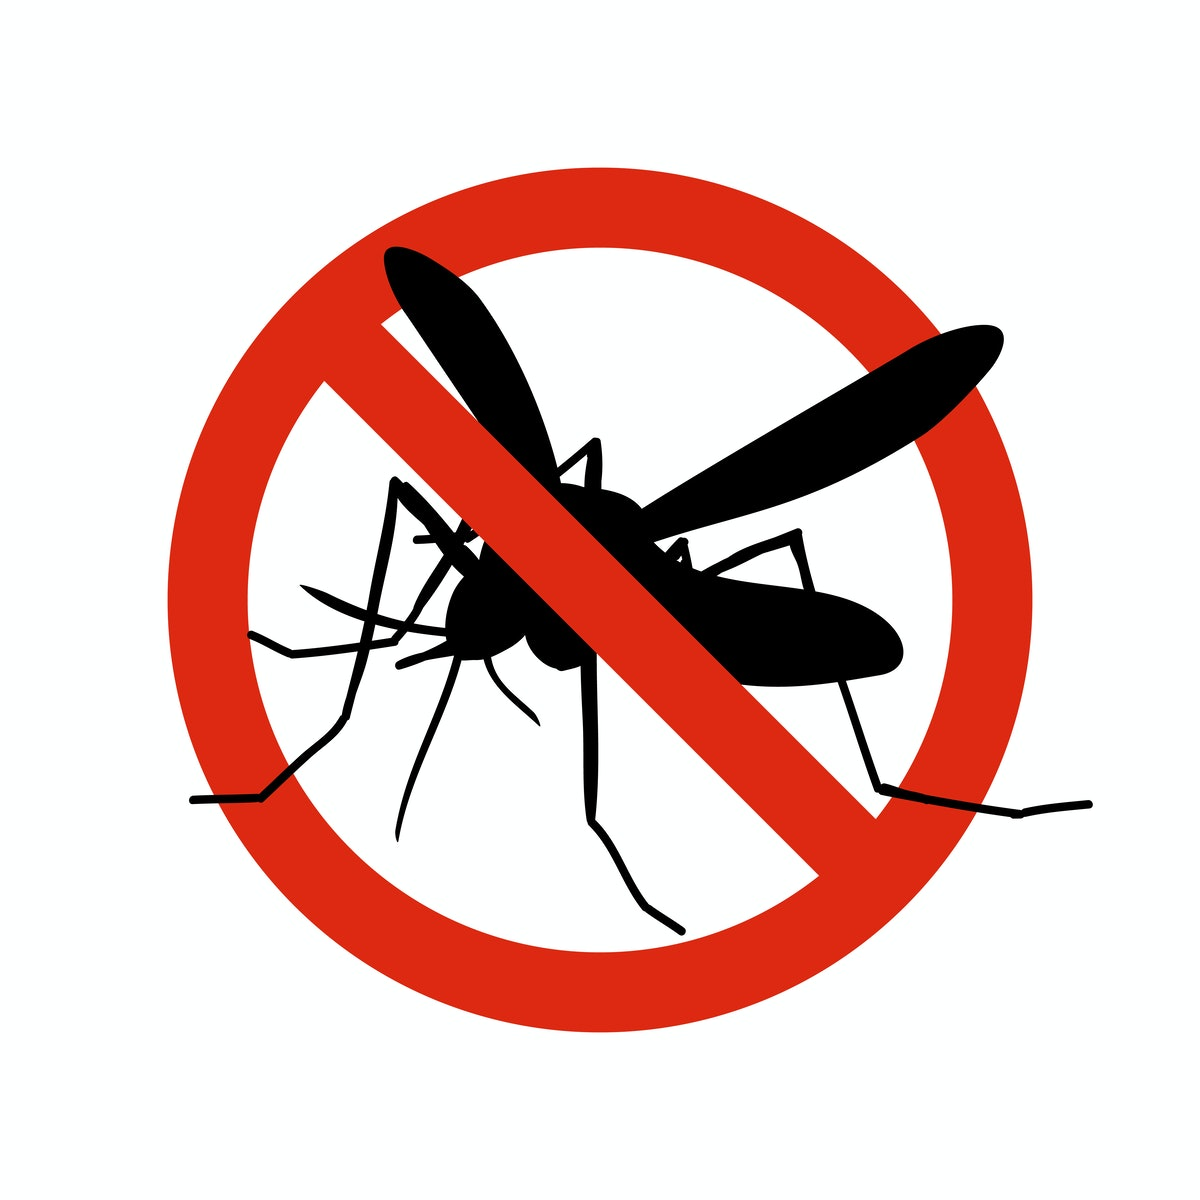 Mosquito warning prohibited sign. Anti mosquitoes, insect control vector symbol. Stop and control mo...